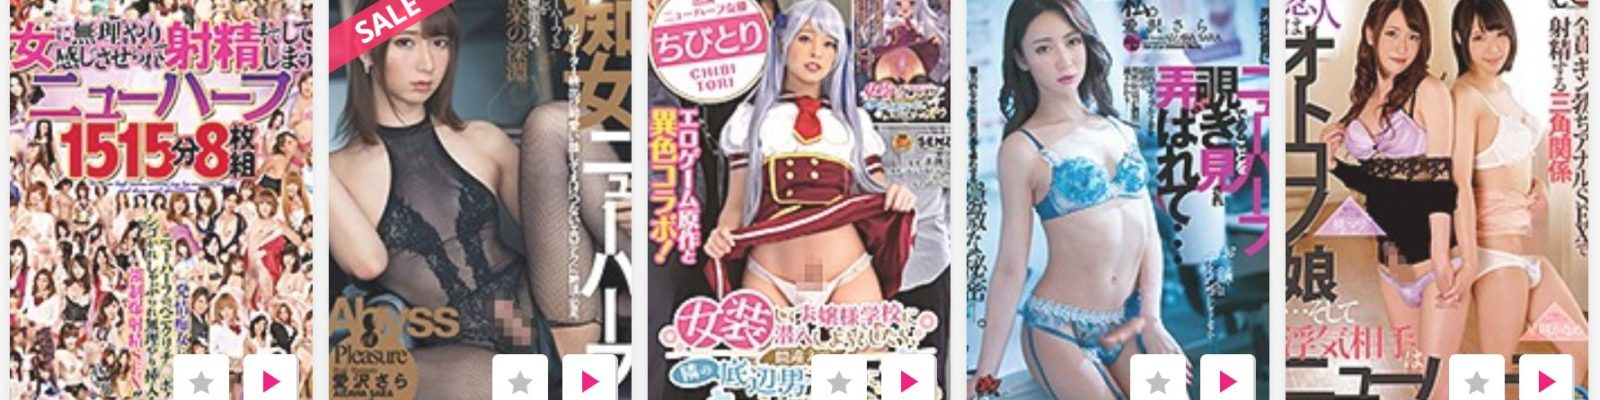 R18 Shemale featured video banner